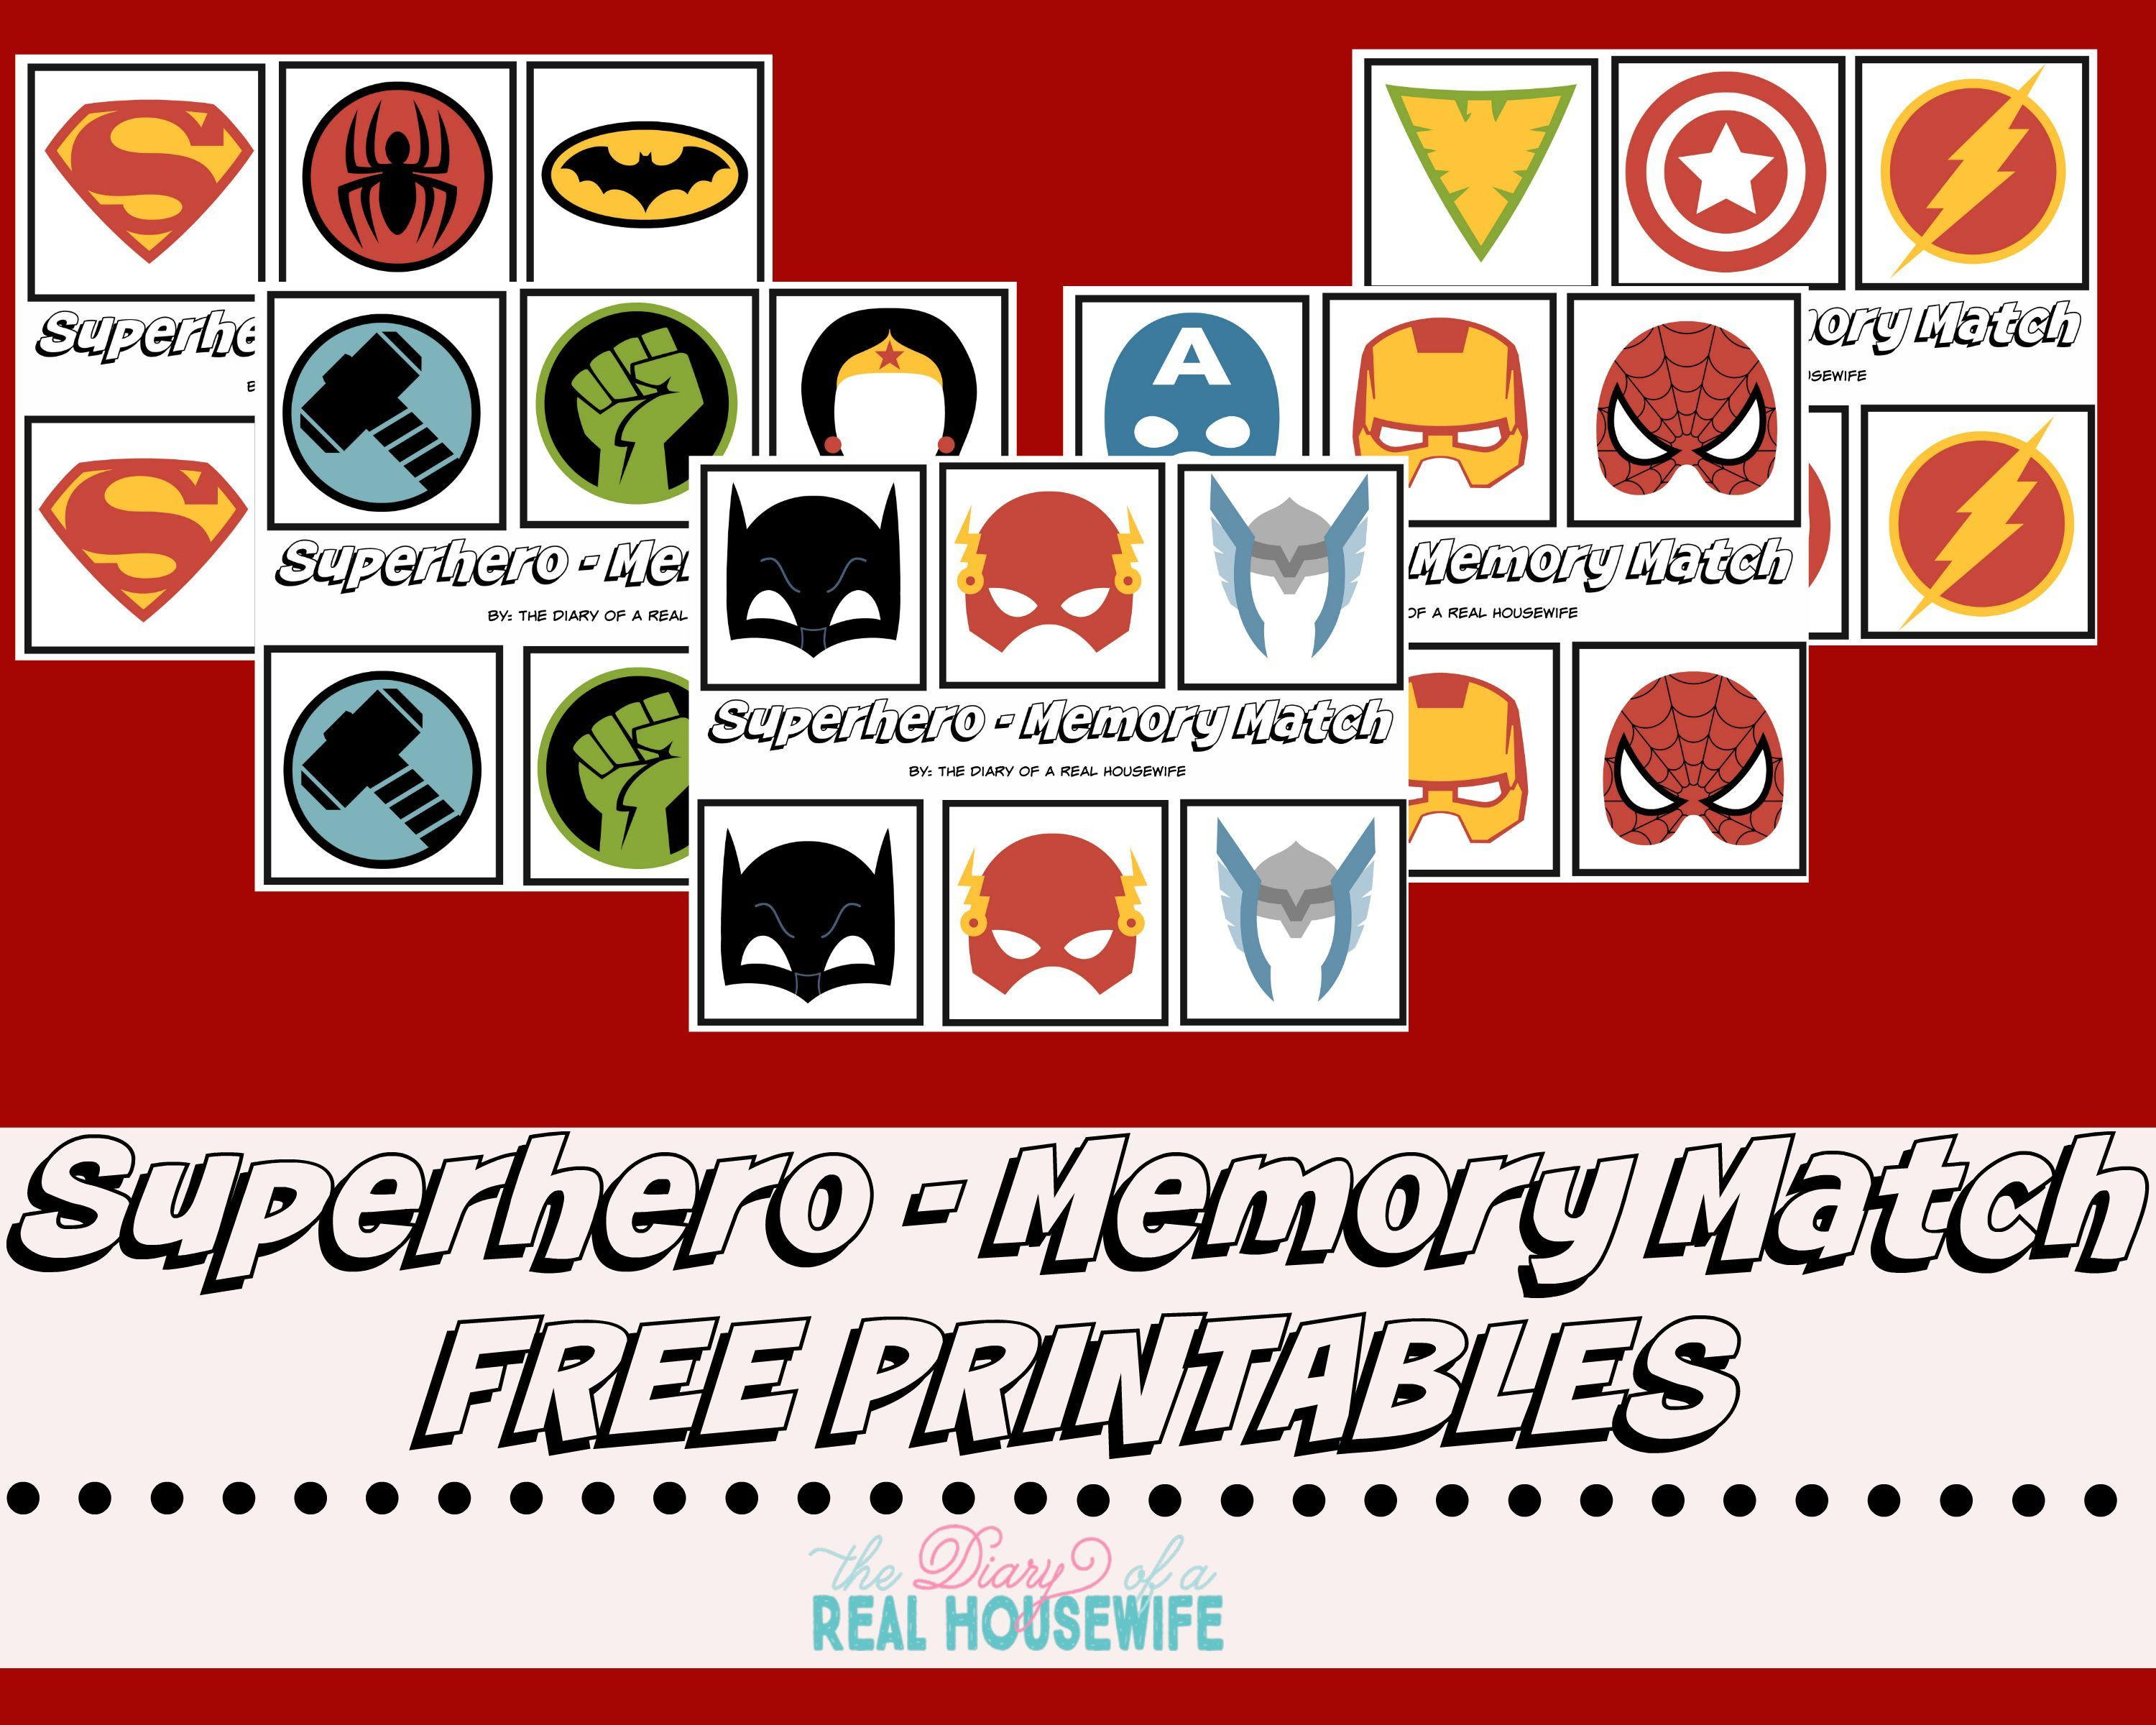 Superhero Memory Match Free Prints